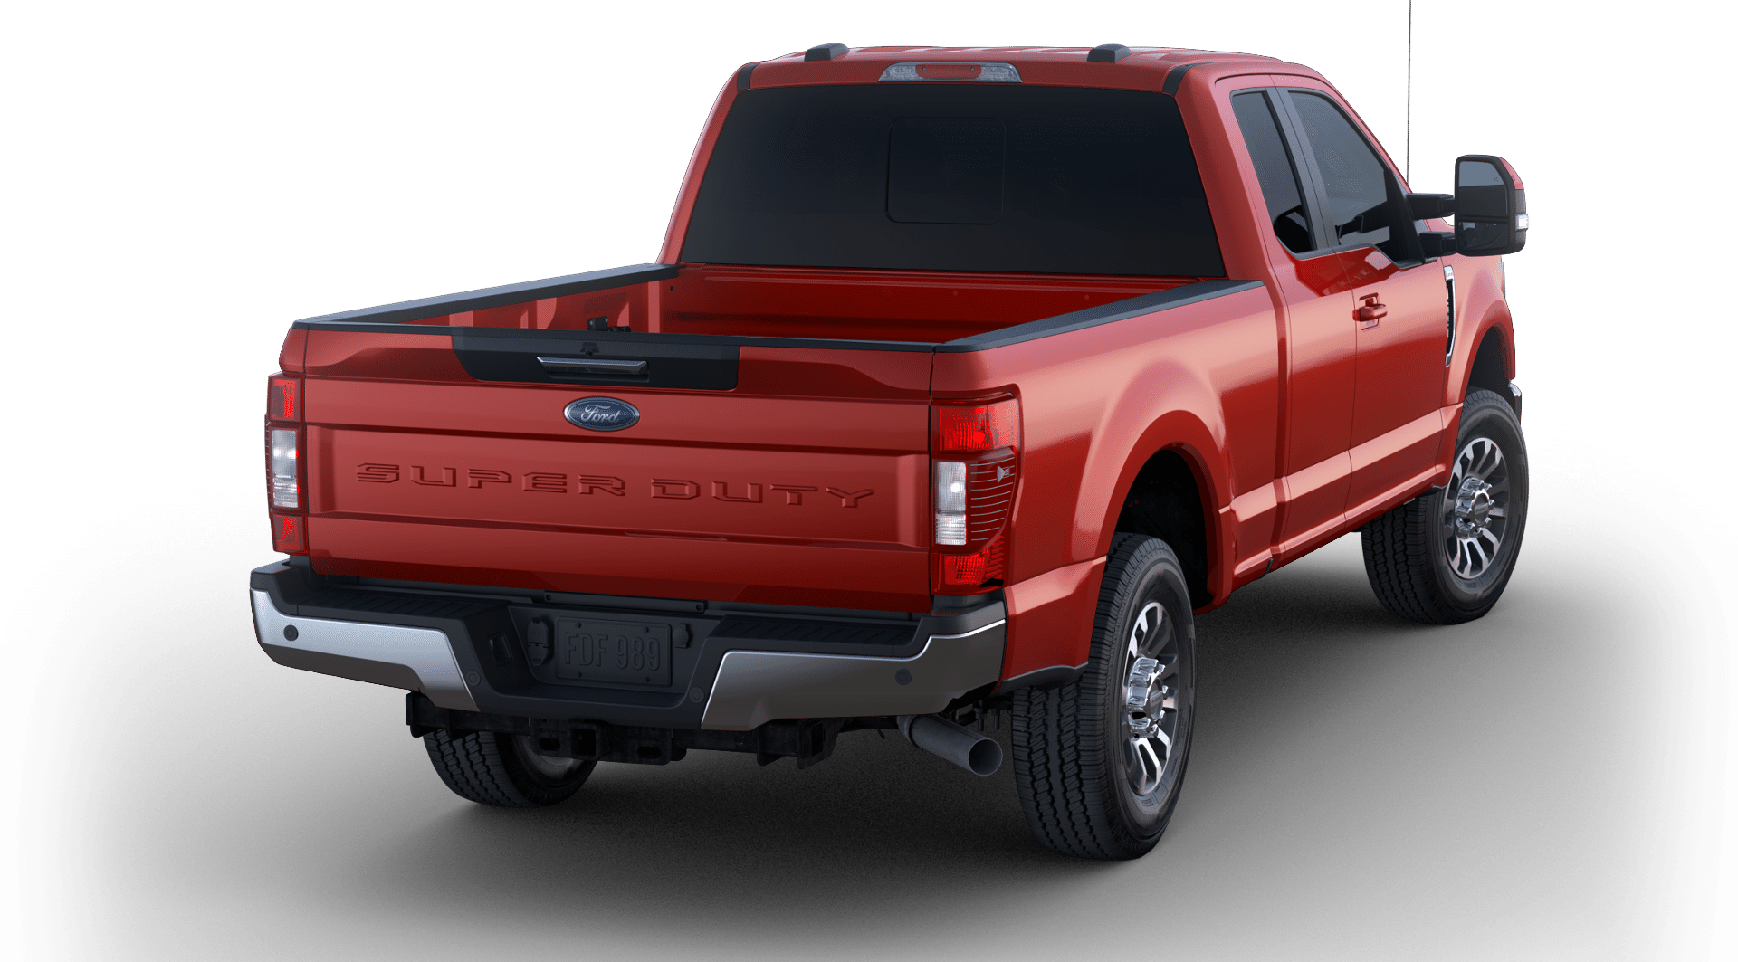 Ford F-250 2020 Lariat 6.2 V8 SOHC FFV Бензин 6-ст. АКПП TorqShift® Heavy-Duty SelectShift-G™ Задний